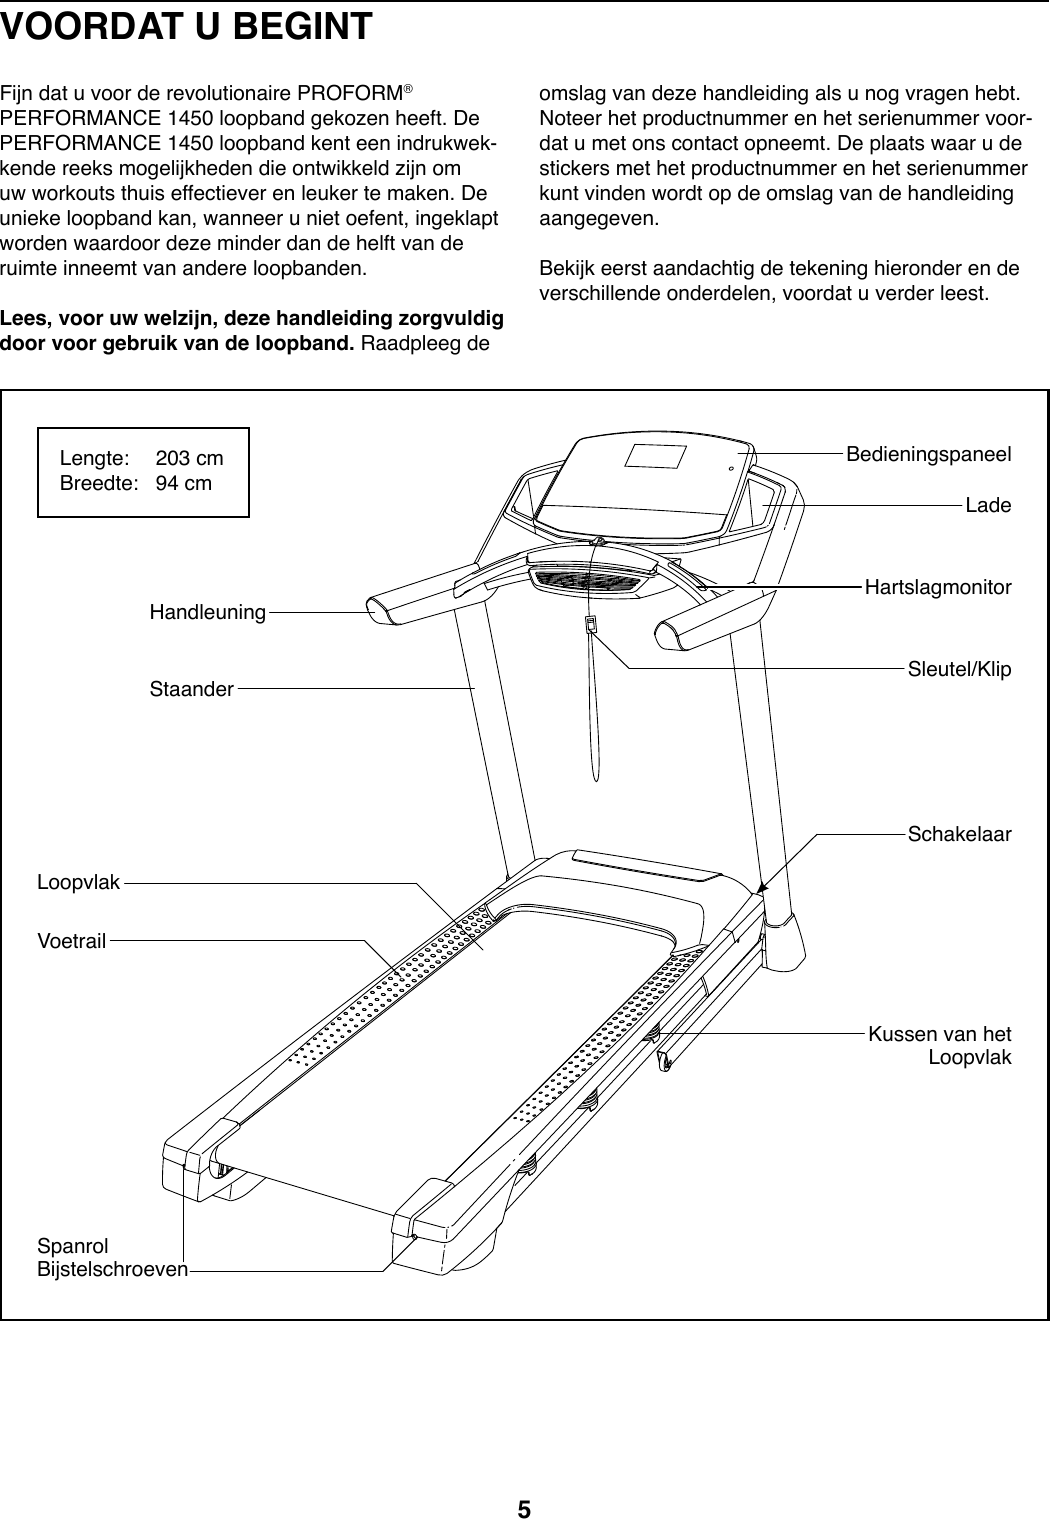 Proform Performance 1450 Treadmill Manual